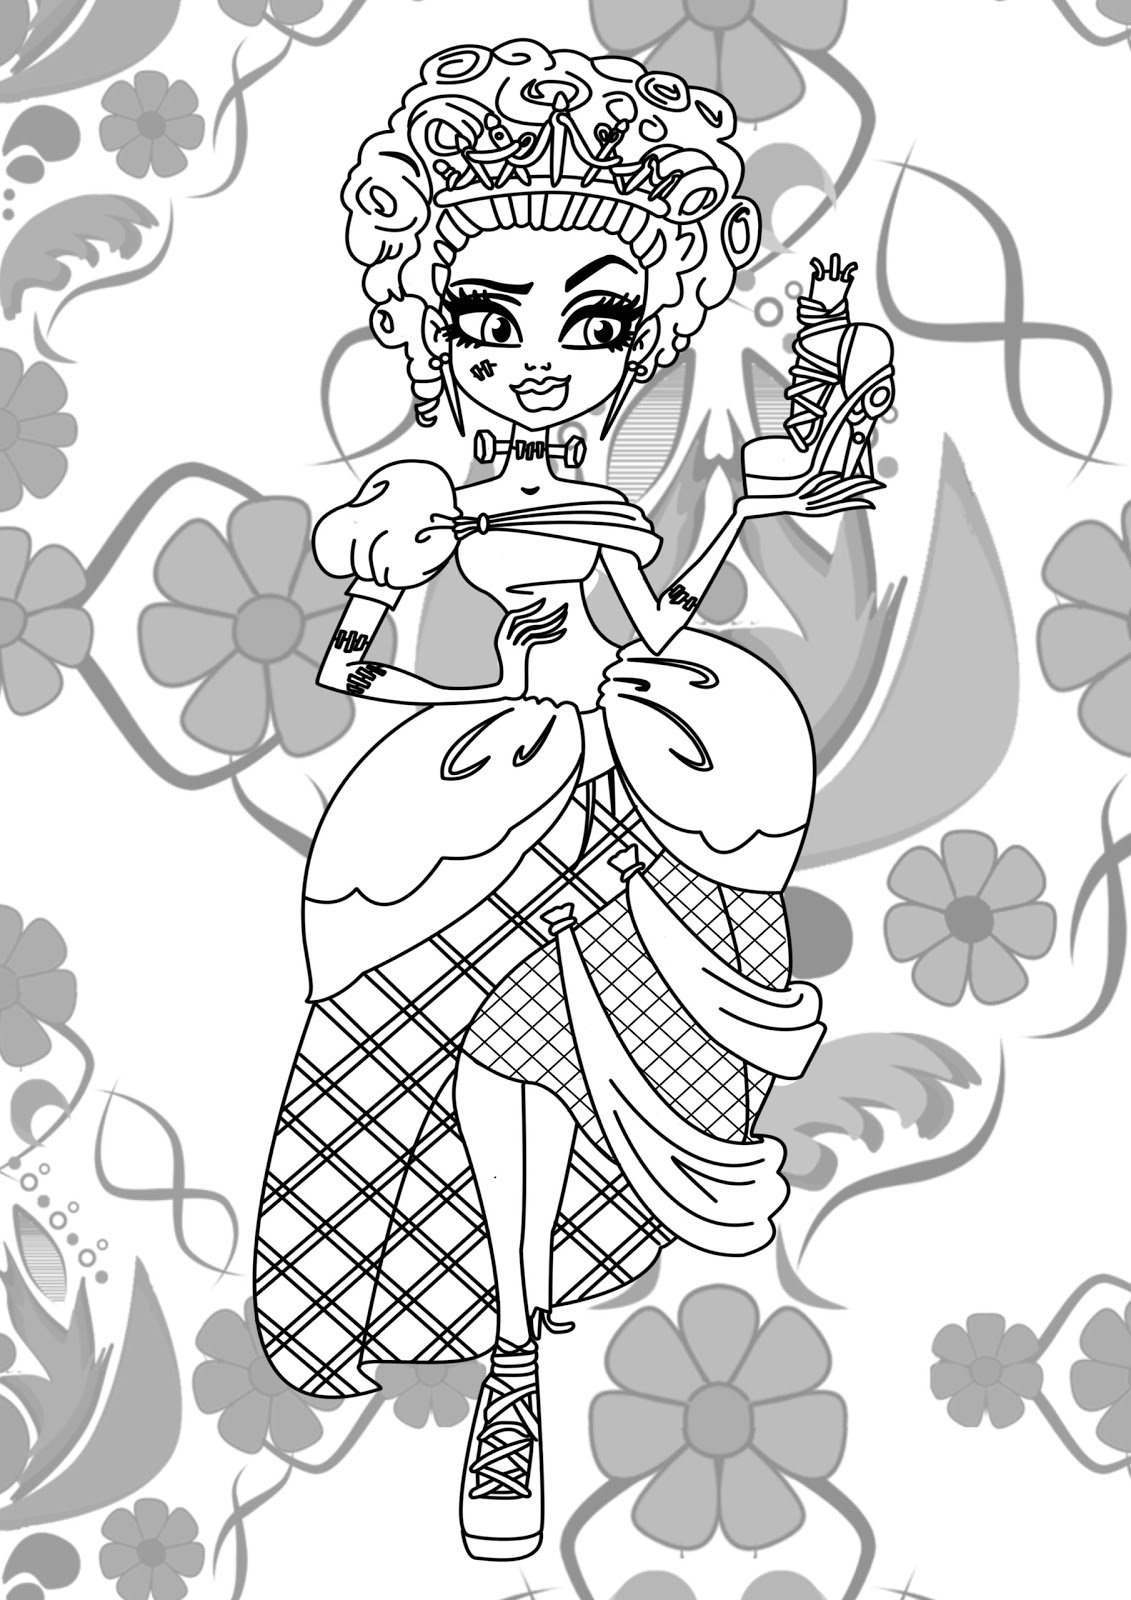 free colouring pages monster high print monster high coloring pages for free or download high pages monster colouring free